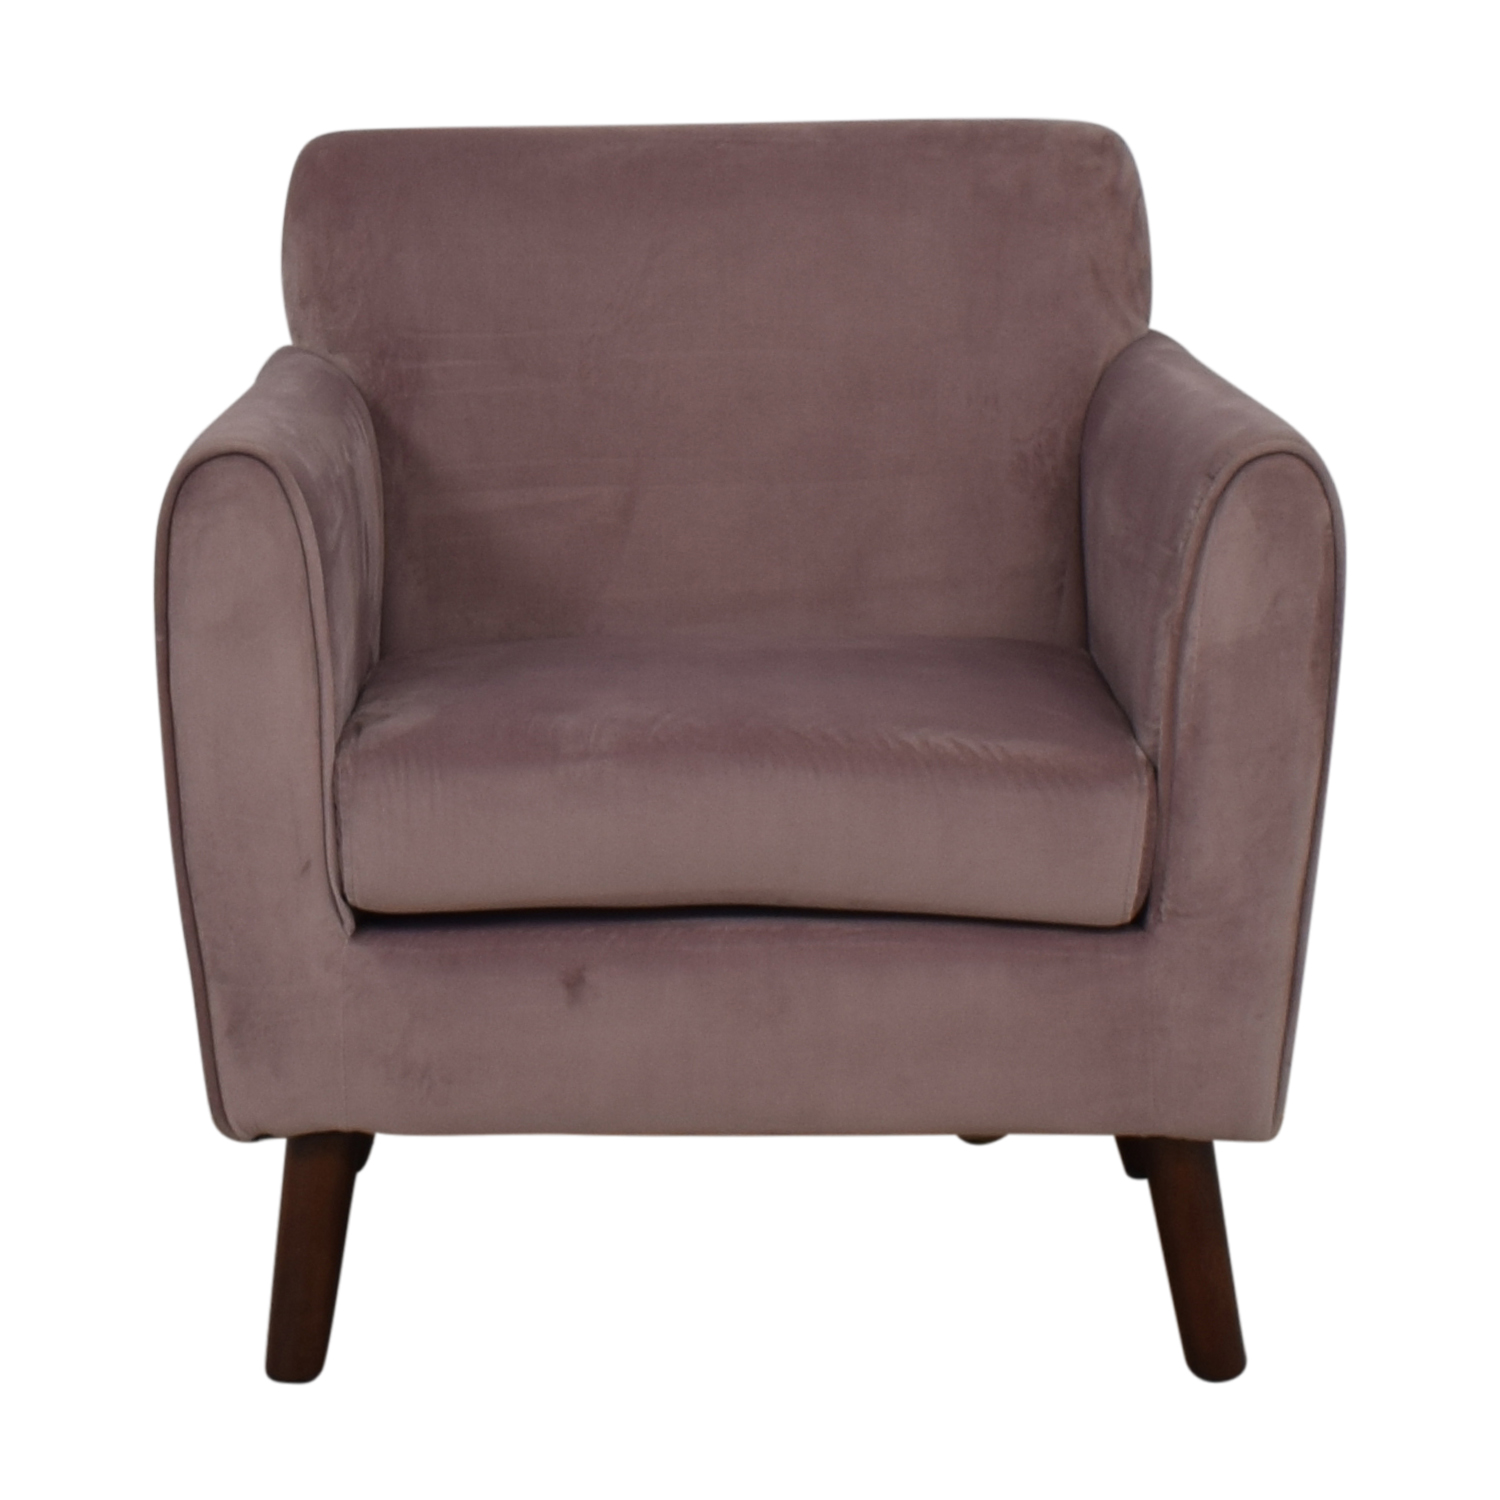 Purple Accent Chair 80 Off Brylane Home Brylane Home Purple Accent Chair Chairs